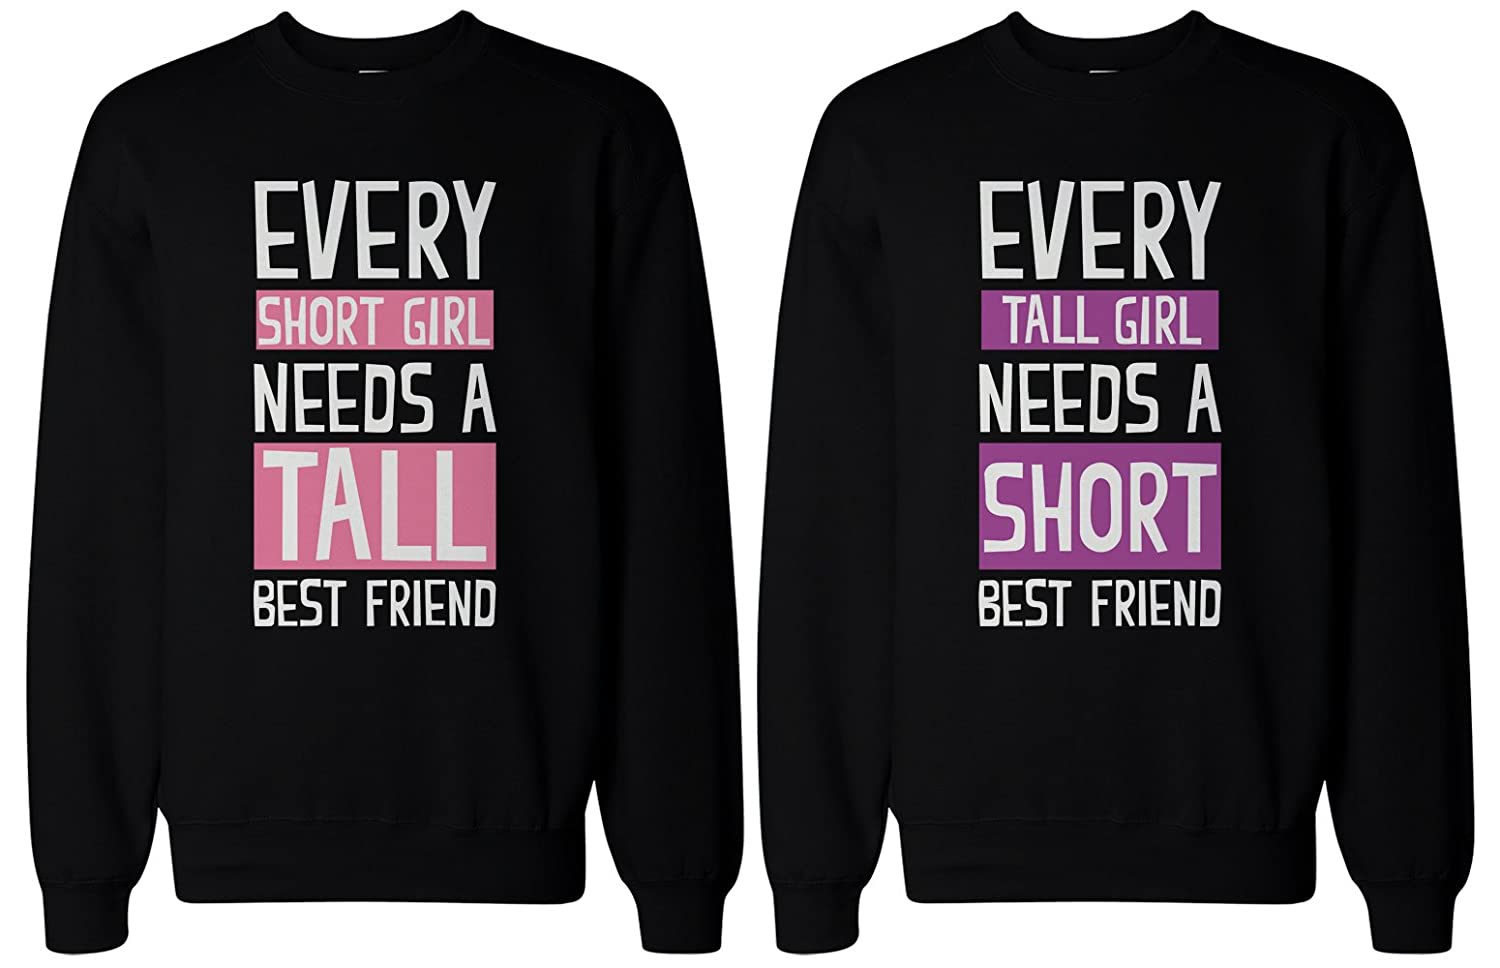 326524cb4 Amazon.com: 365 In Love BFF Gifts - Tall and Short Best Friend Matching  Sweatshirts for Best Friends: Clothing